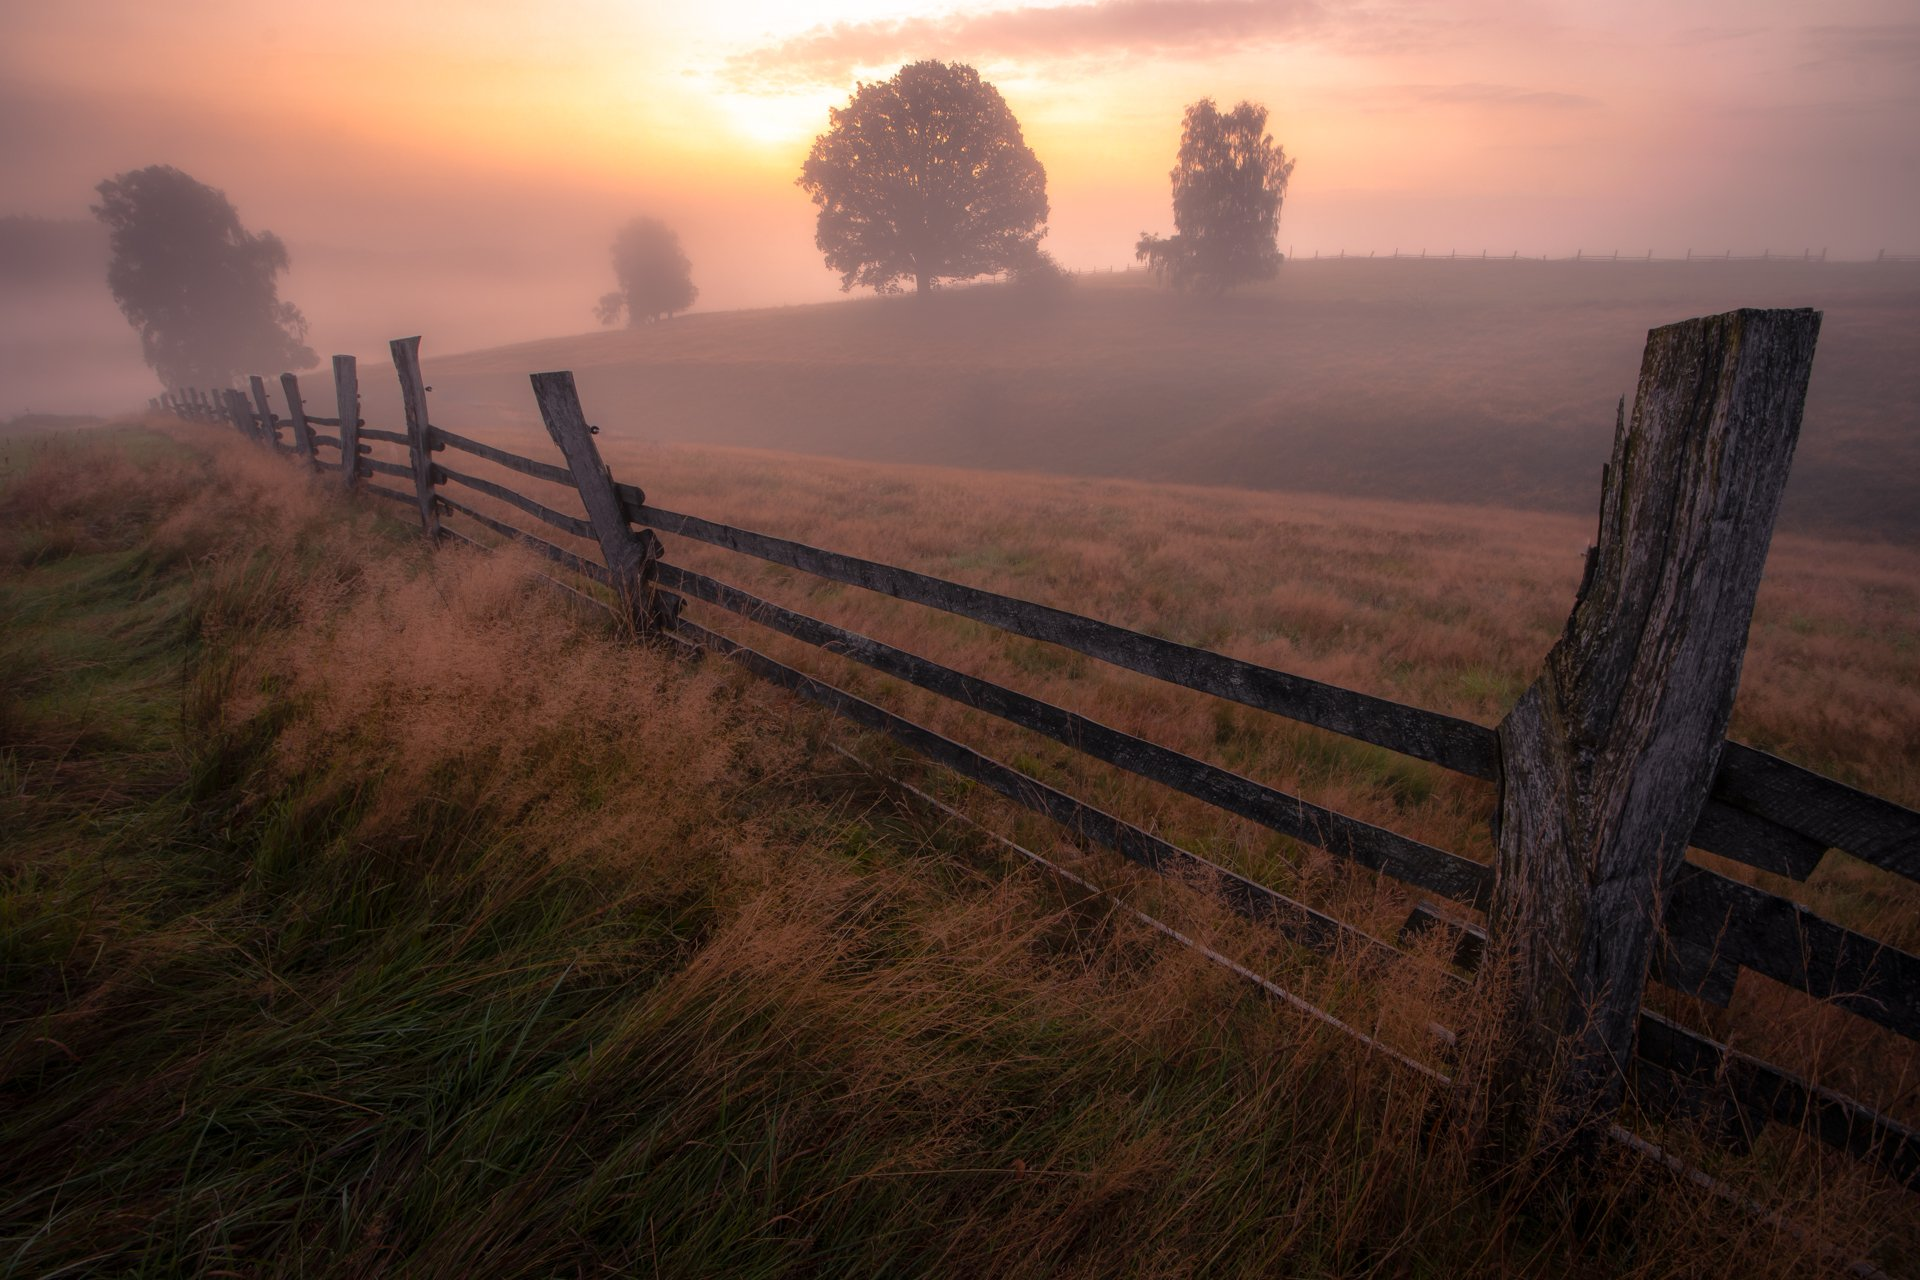 landscape, nature, sunrise, fog, mist, meadow, fence, autumn, trees, tree, , Prchal Luboš